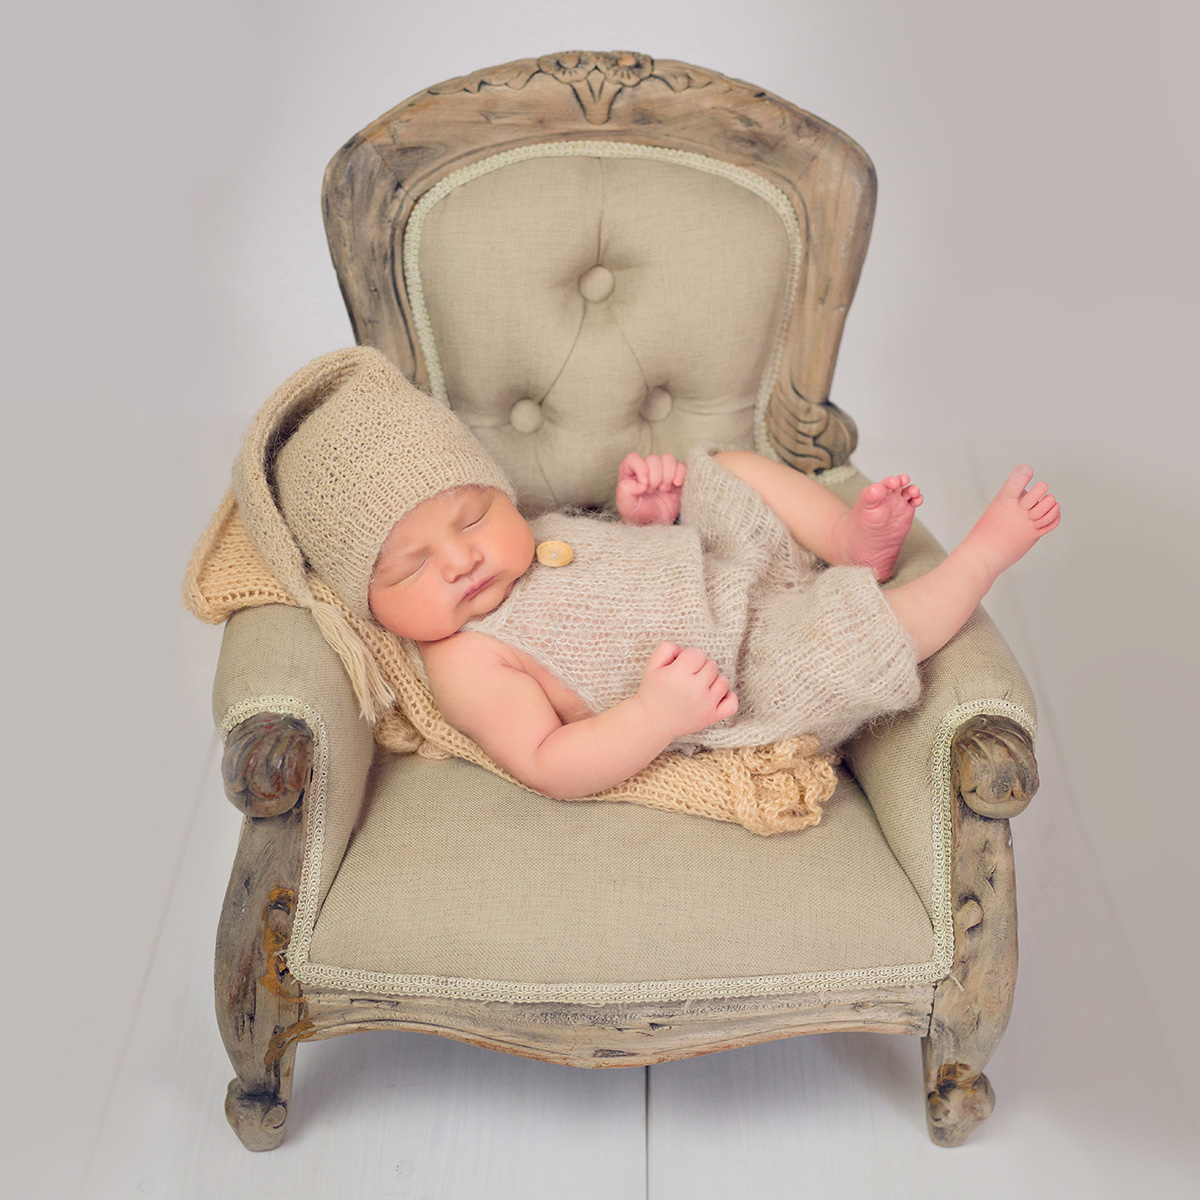 newborn-photography-ann-wo-london-cute-vintage-chair-knitted-romper.jpg